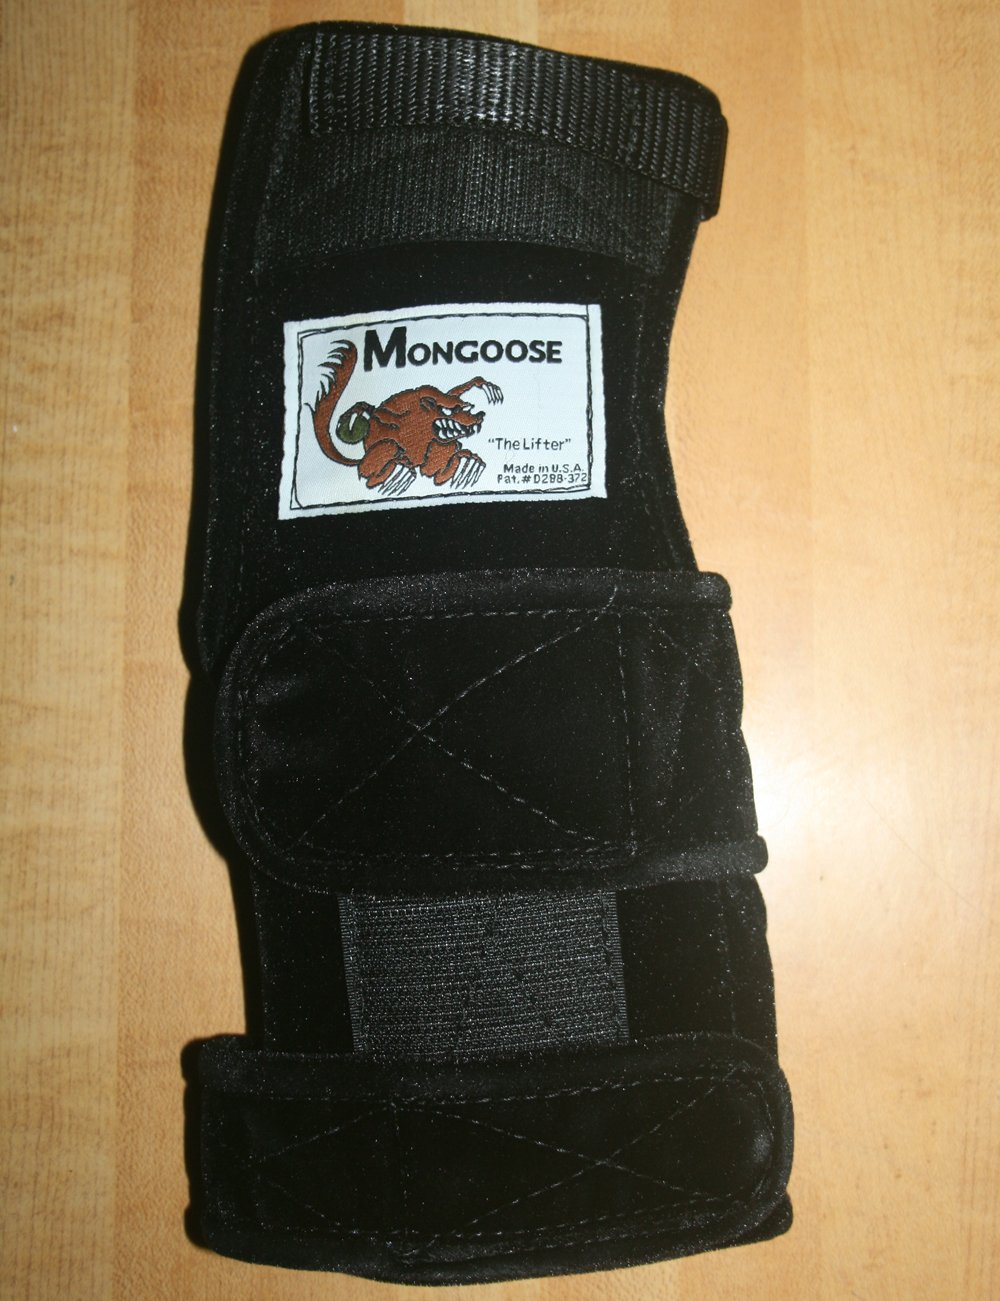 Mongoose Lifter Bowling Wrist Support Right Hand,Meduim, Black